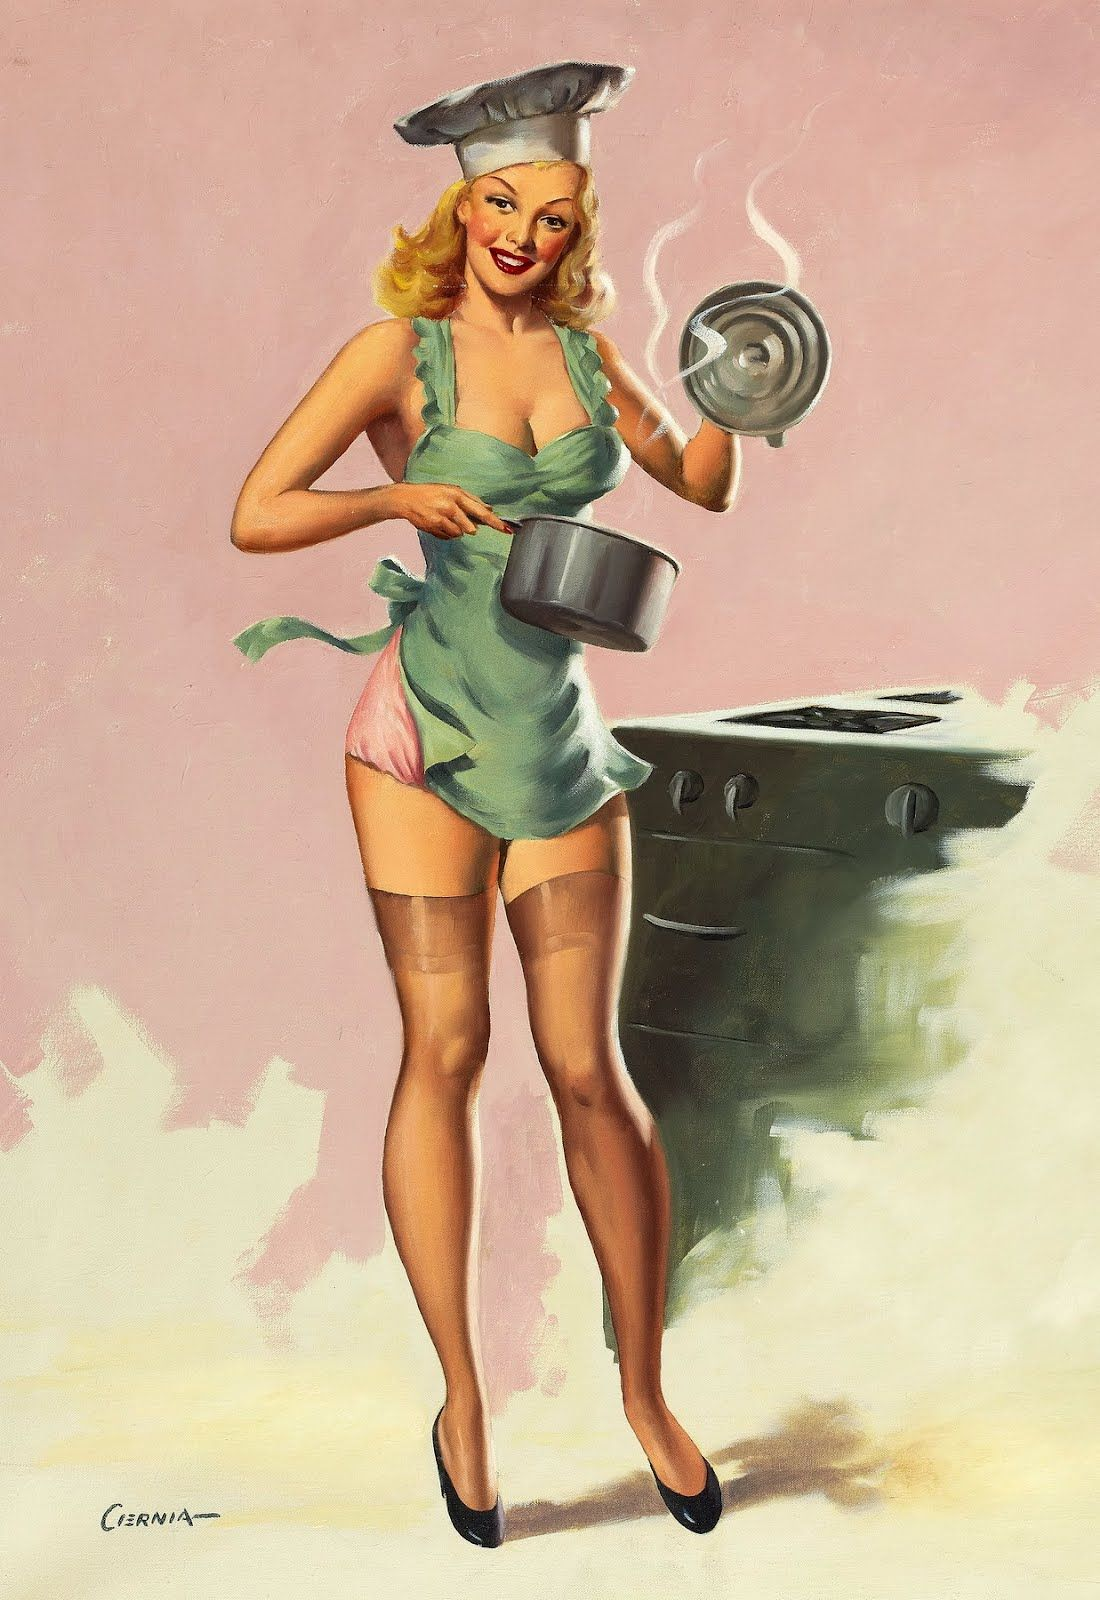 Paul Cernia Via Classic Pin Up Girls At Work Pin Up And Cartoon